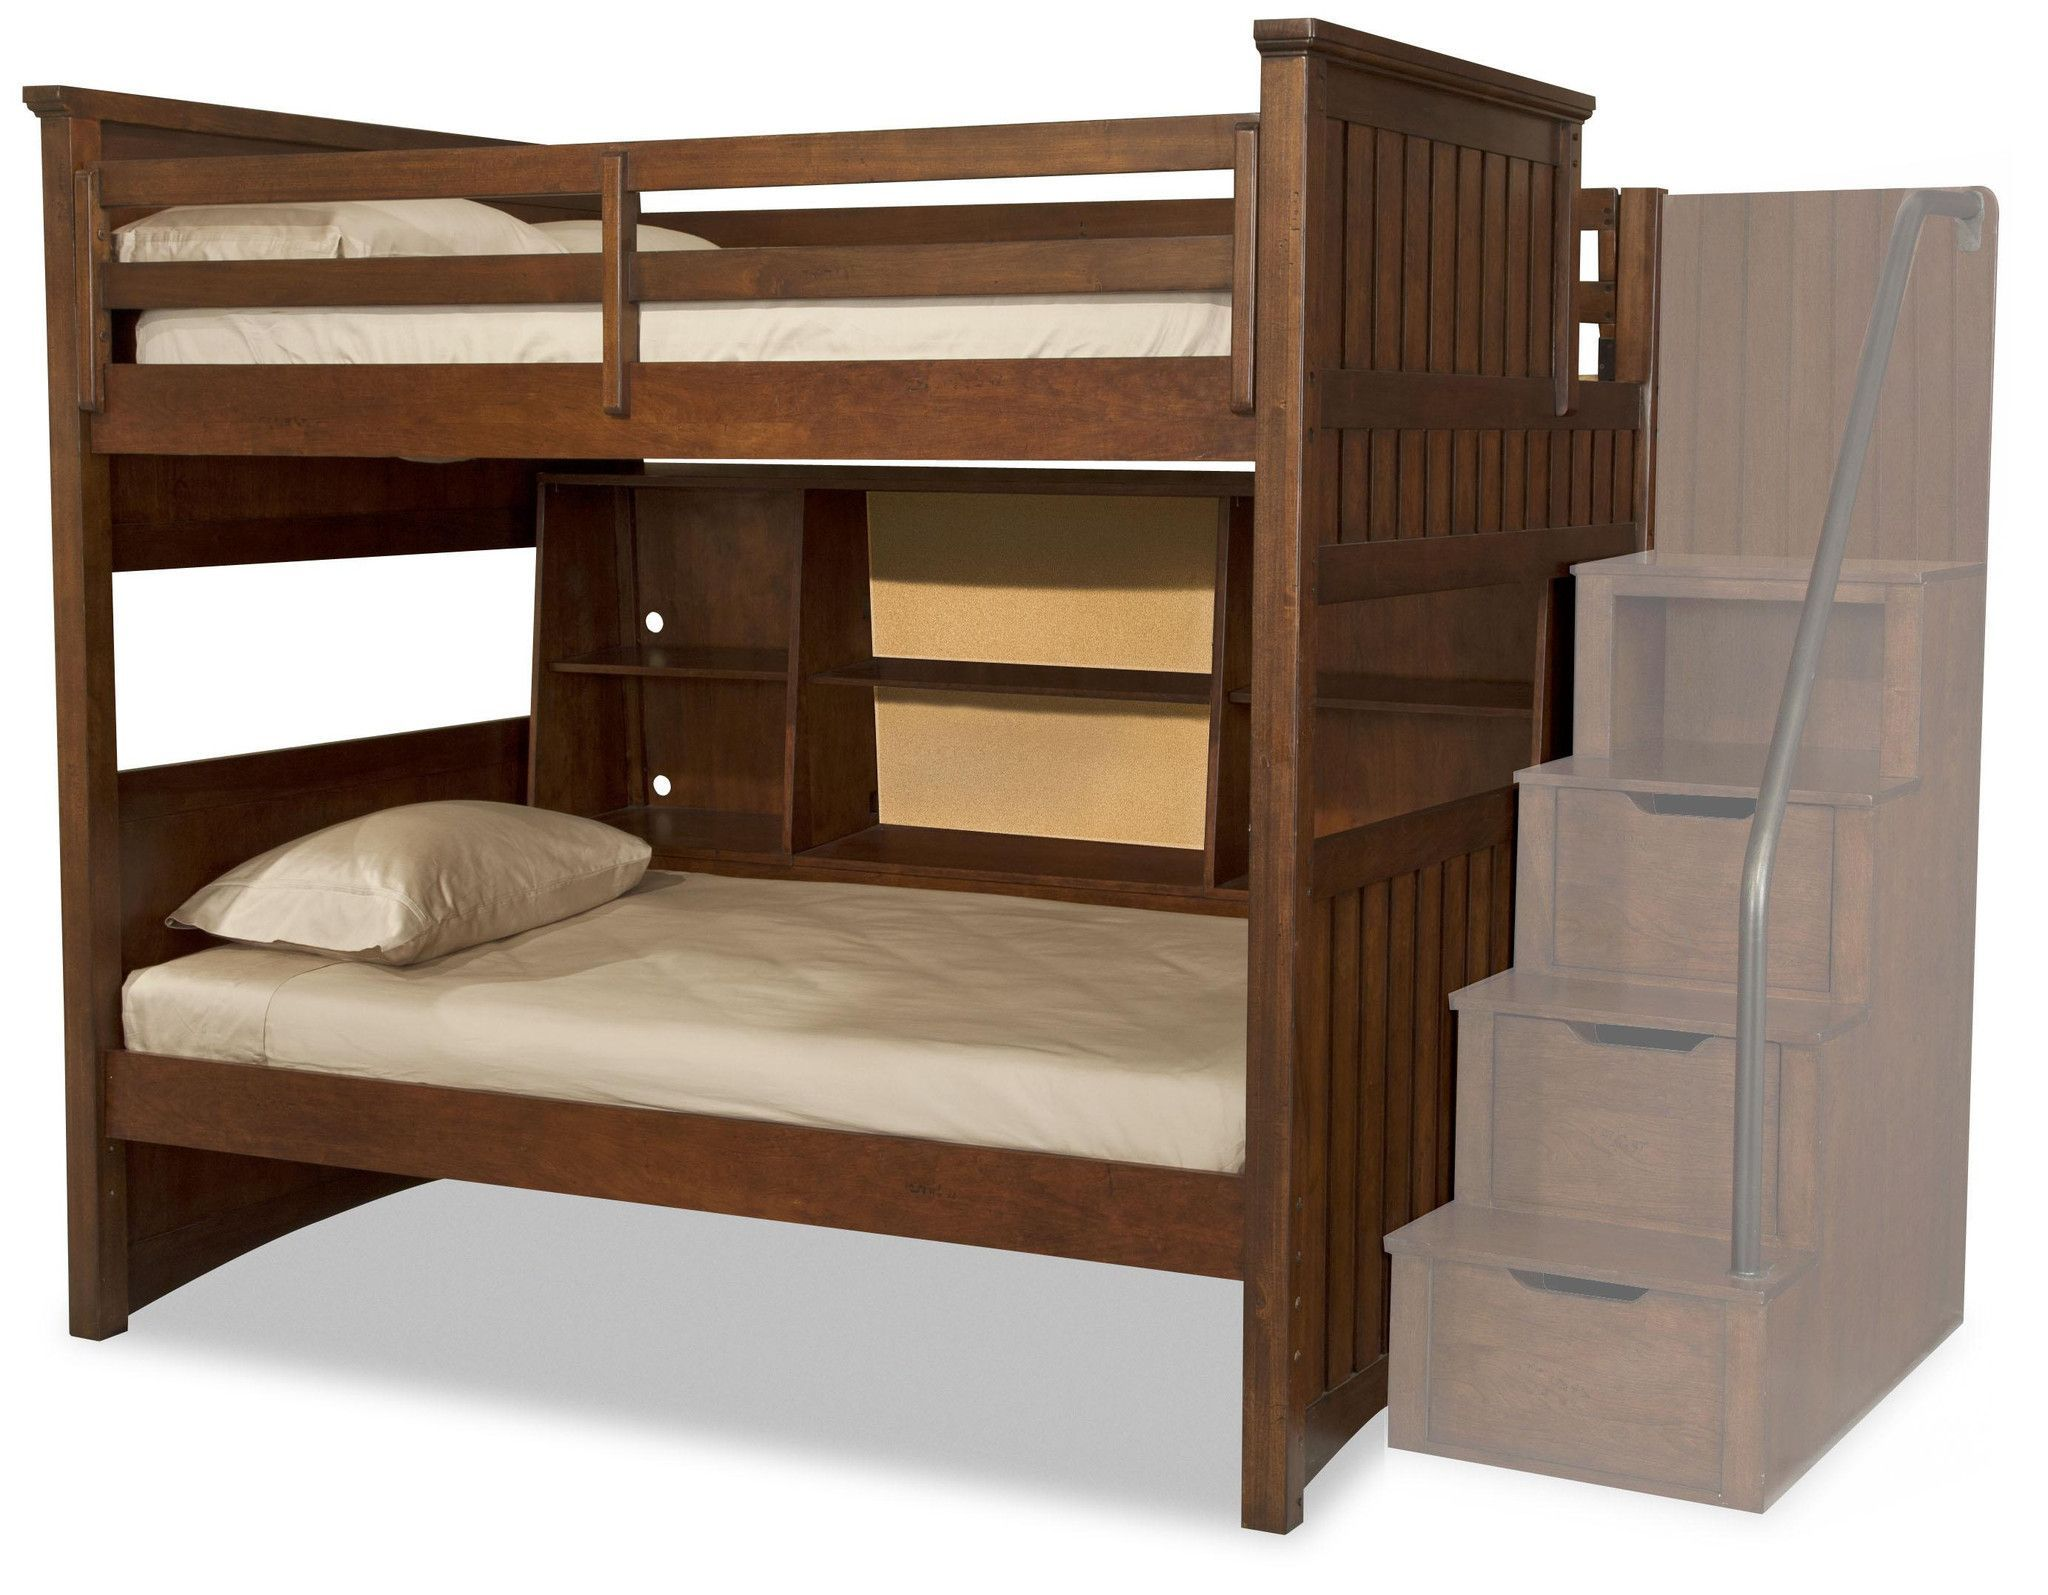 with and twin full mattress bunk bed trundle storage convertible double for cheap drawers cool bump bedroom wooden stairs over black beds low steps size kids height loft white